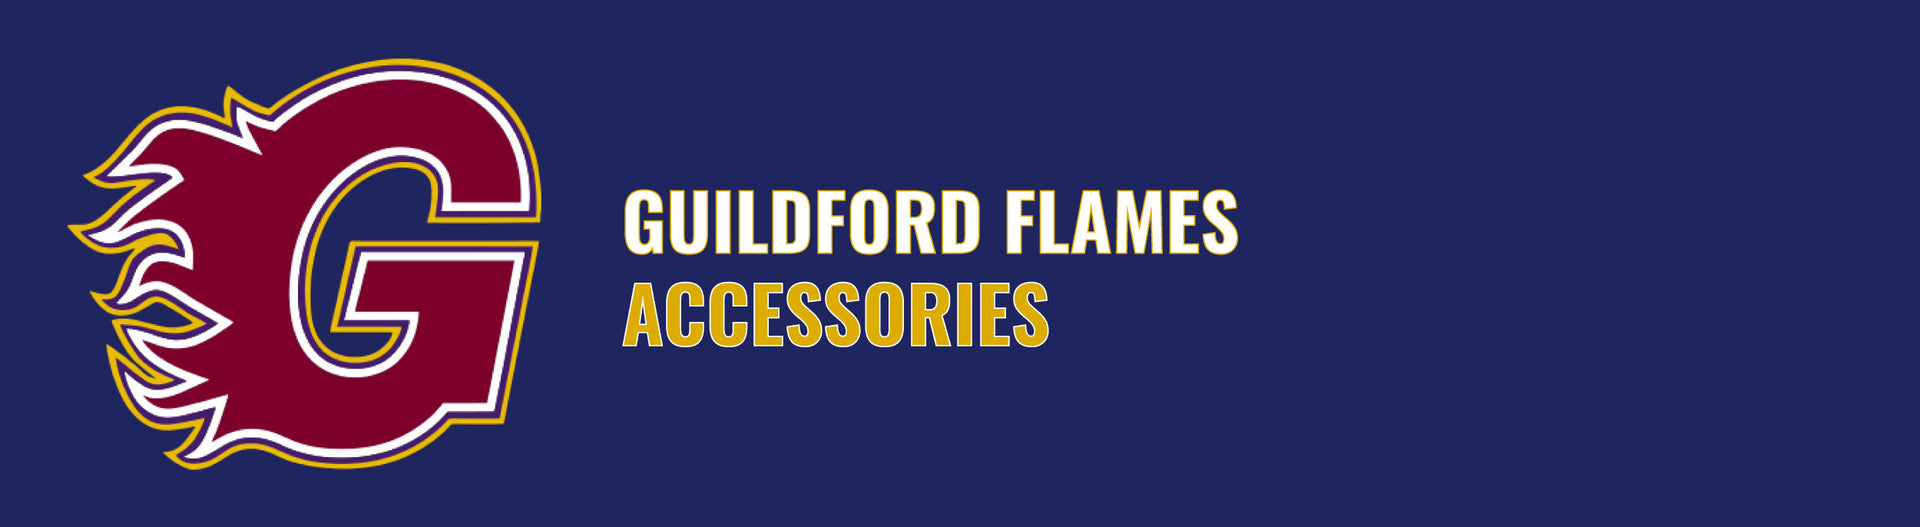 Guildford Flames Accessories